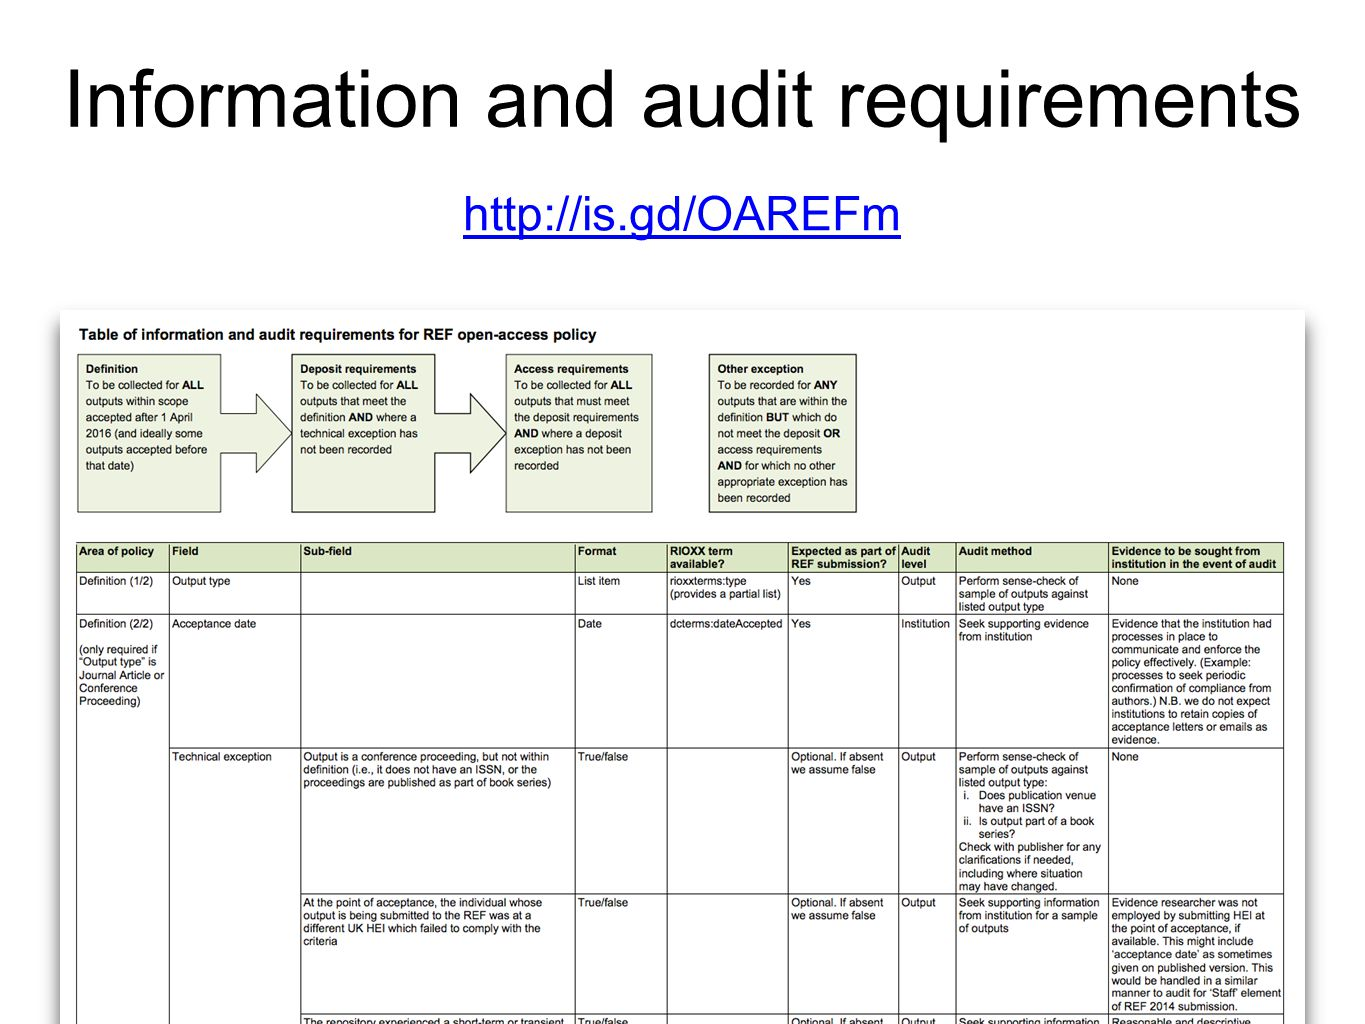 Information and audit requirements http://is.gd/OAREFm